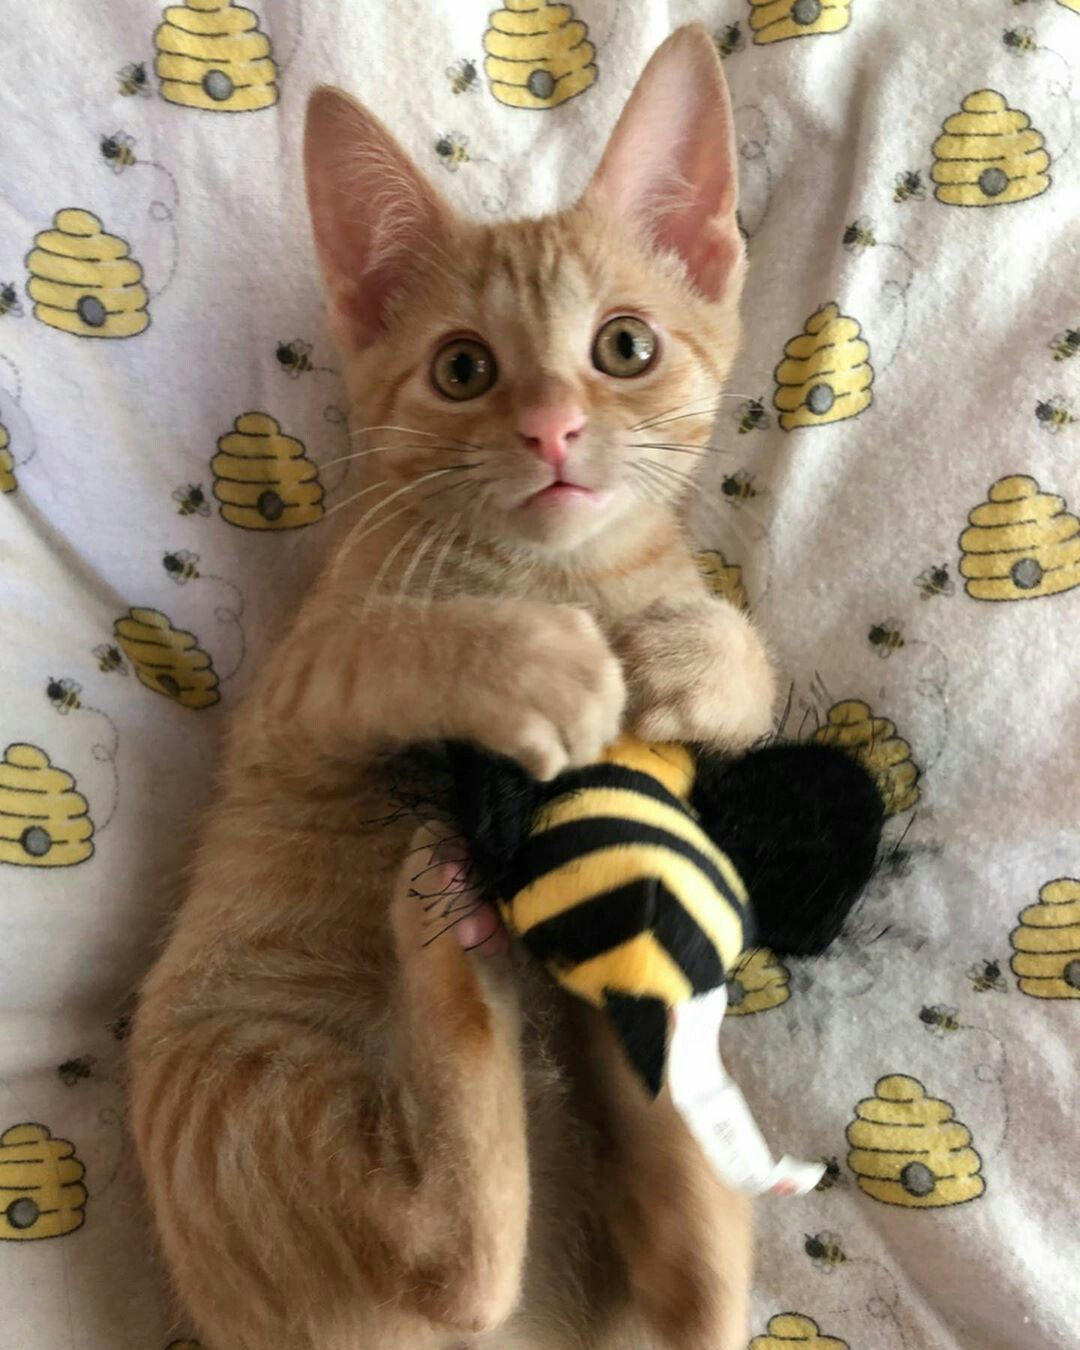 Pin By Cute Creatures On Cute Cats In 2020 Cute Cats Cat Behavior Fluffy Cat